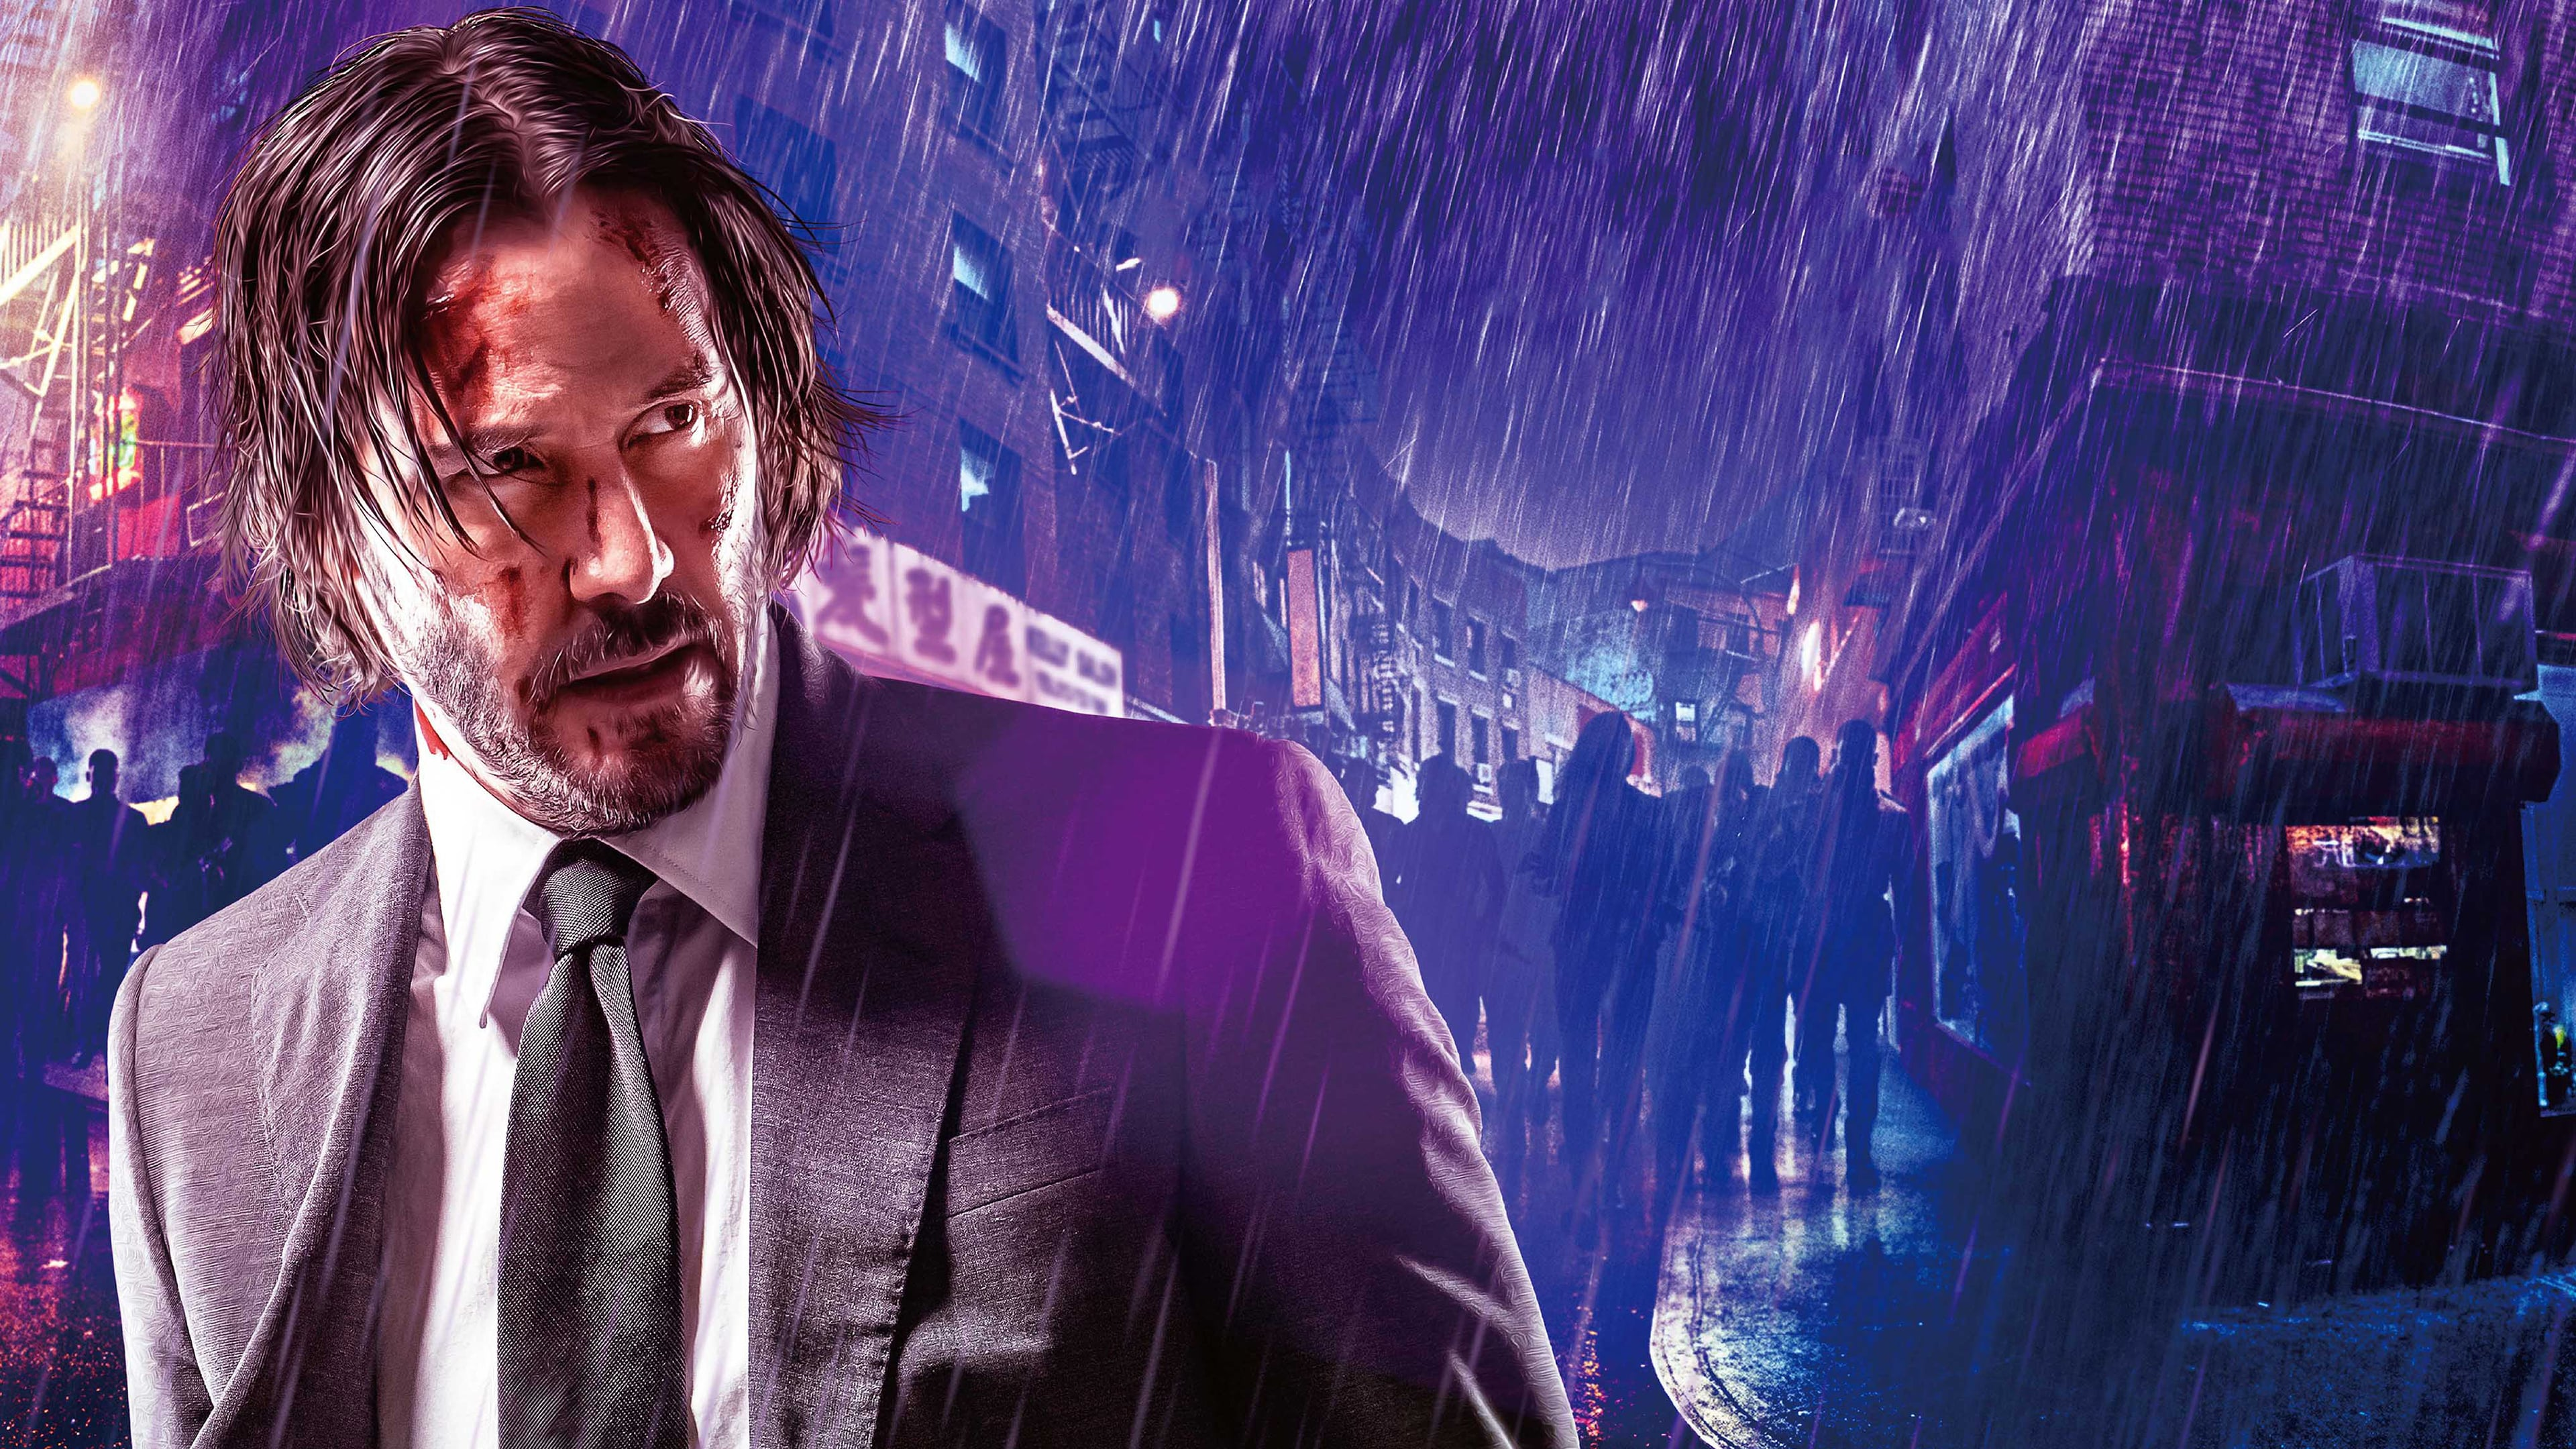 John Wick: Chapter 3 - Parabellum at ODEON Bournemouth BH2